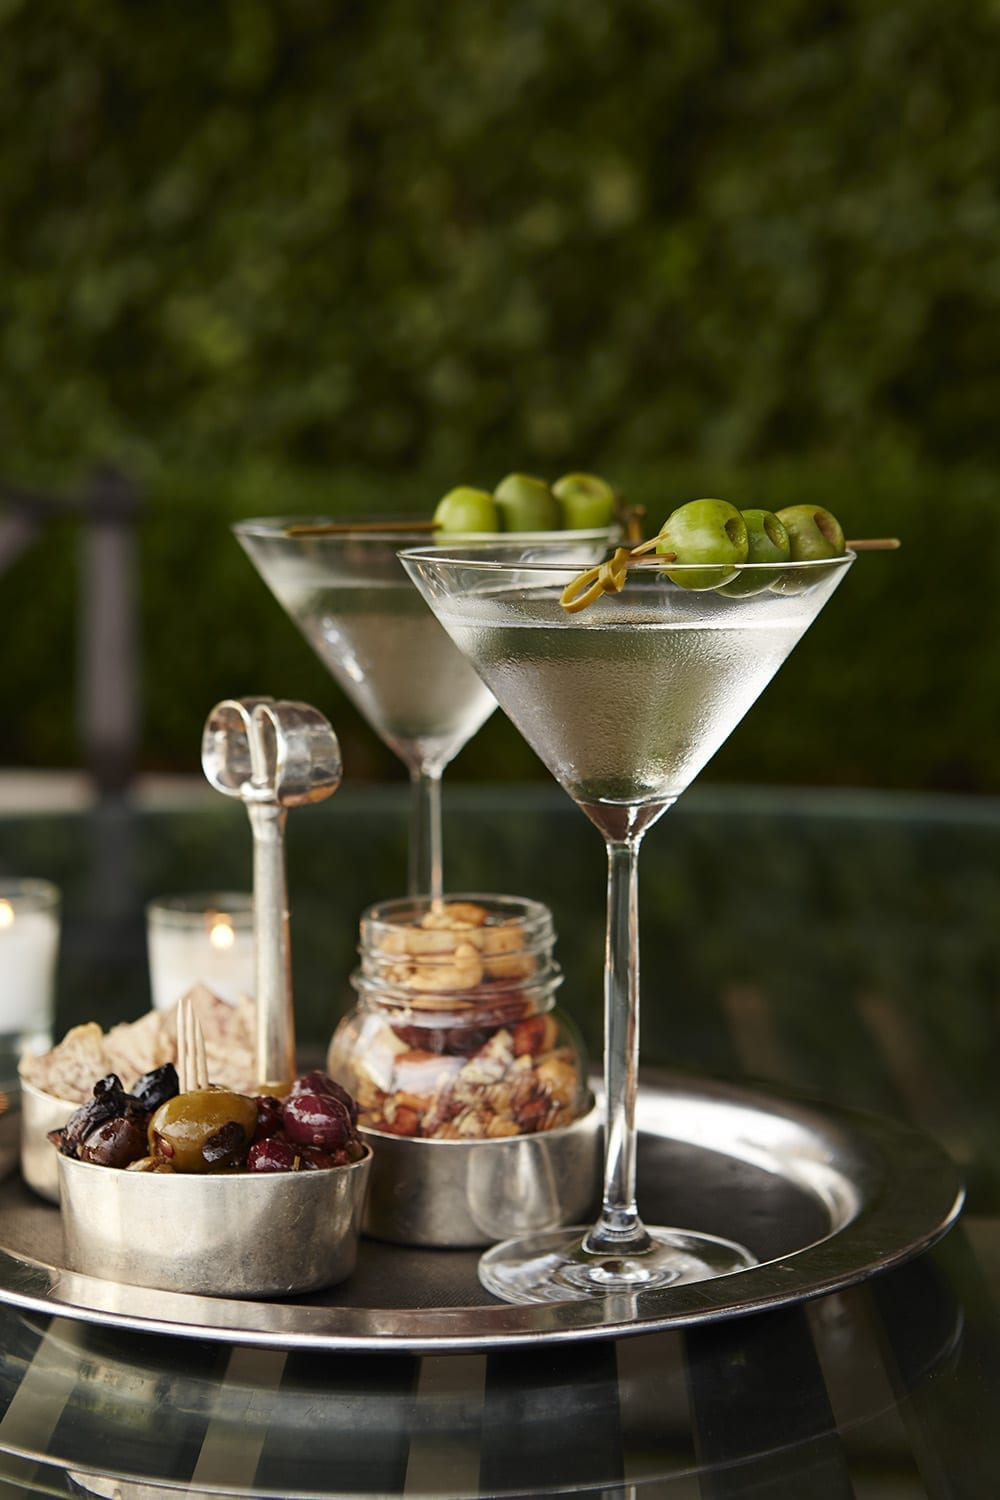 Close up of a round serving tray holding two martinis. Some jars of dried fruit and nuts are placed alongside.